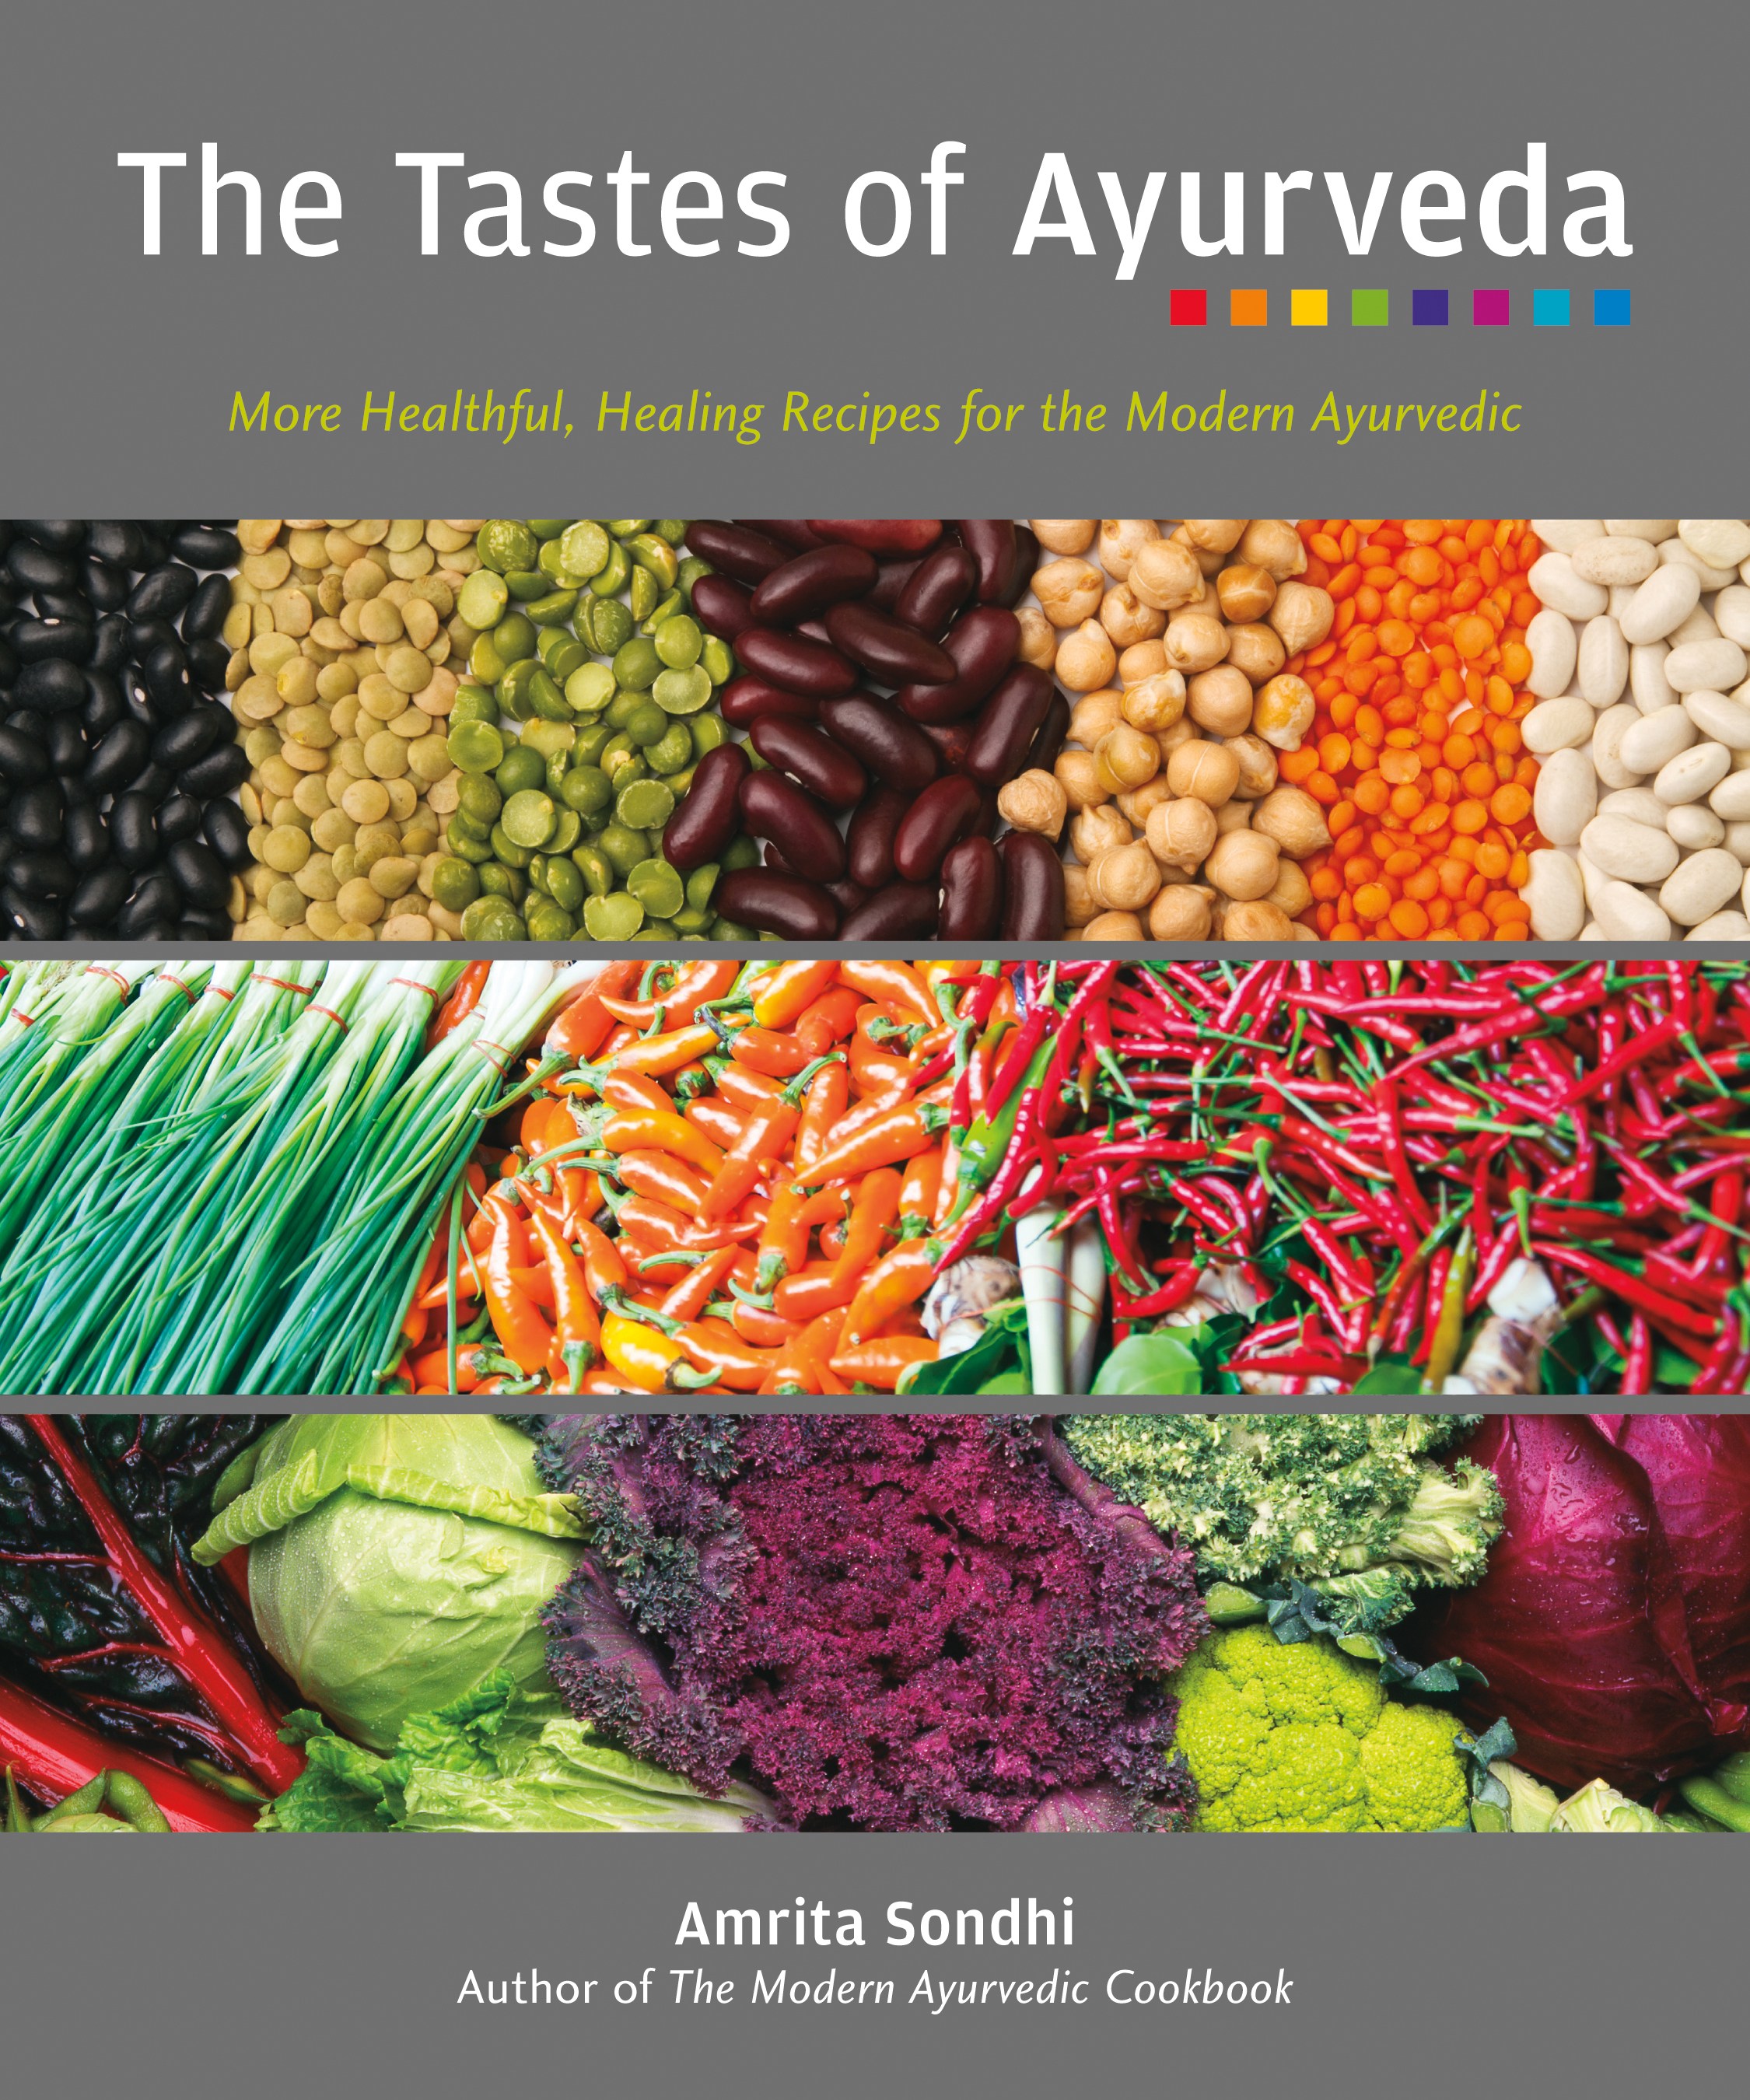 The Tastes of Ayurveda By: Amrita Sondhi